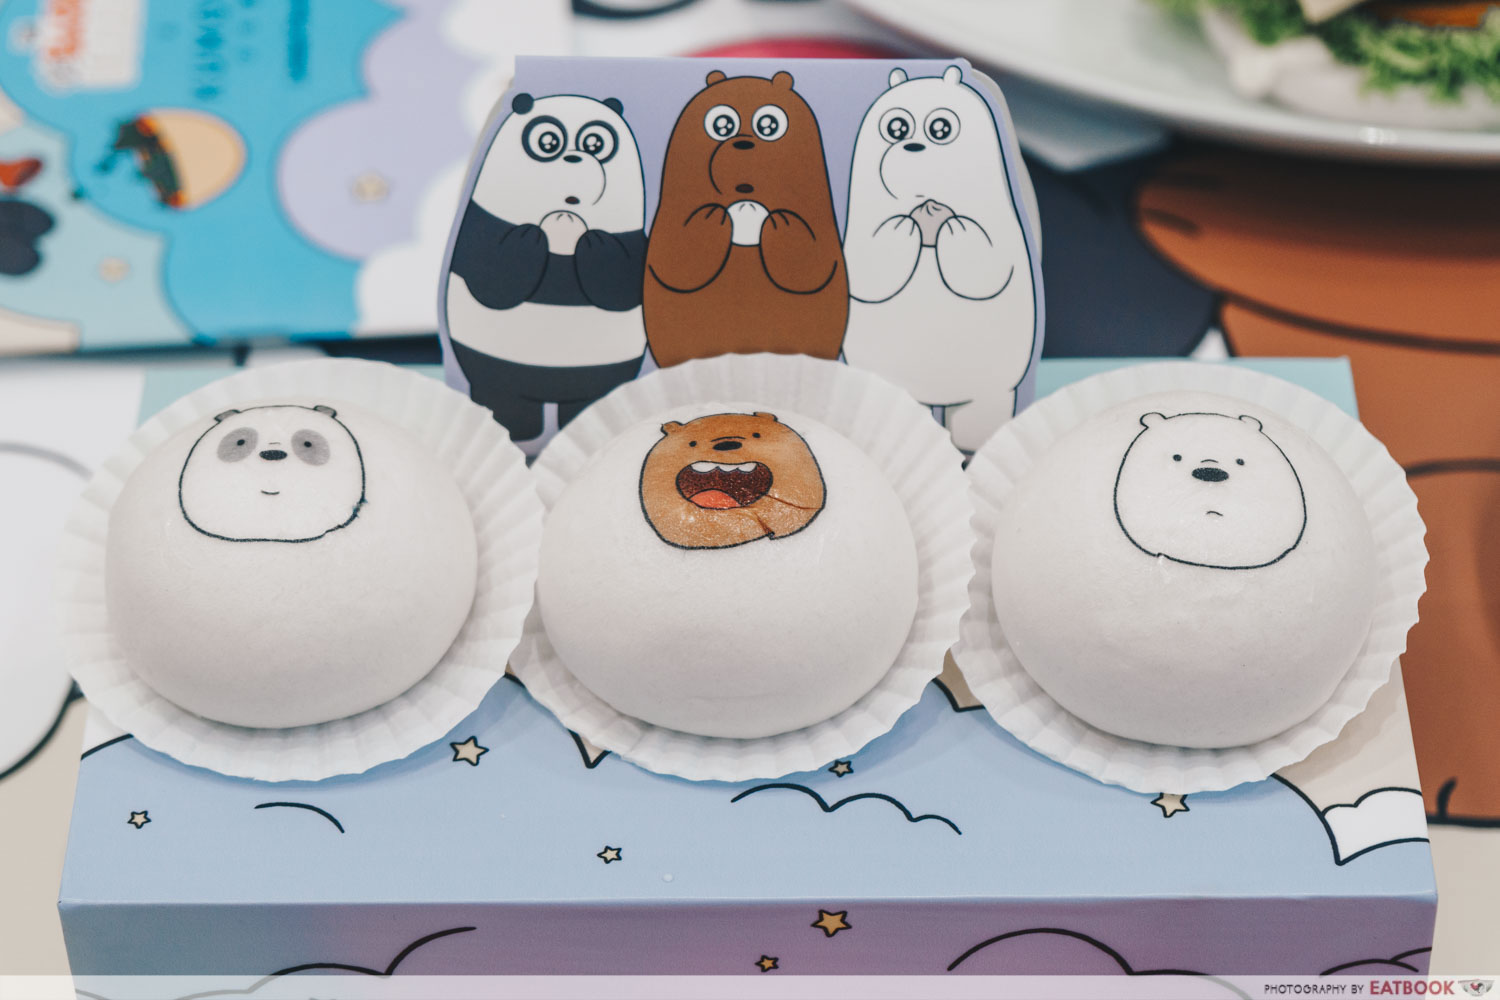 We Bare Bears Cafe - Special We Bare Bear Baos